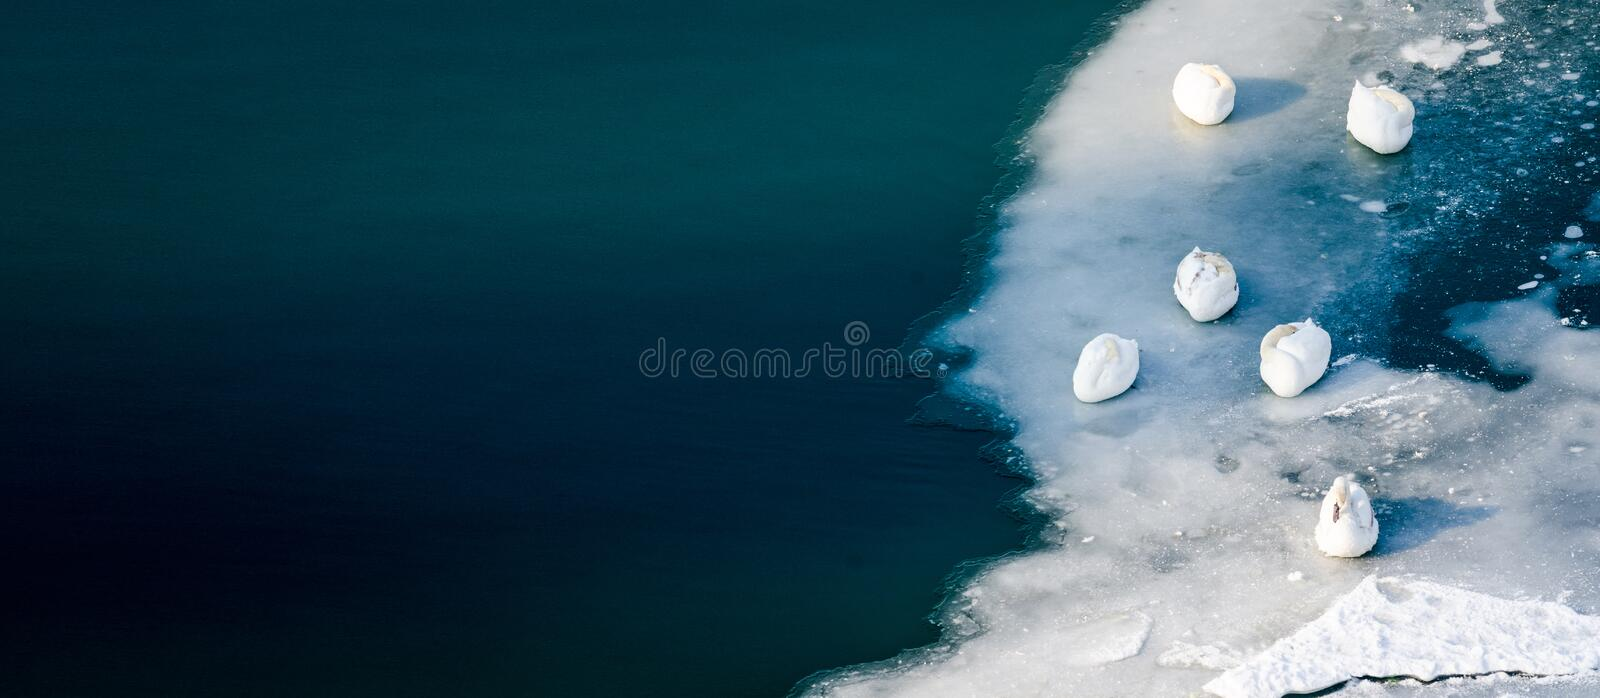 Flock of beautiful white mute swans sleeping on the ice of beautiful turquoise river or lake, free animals in nature concept stock photos